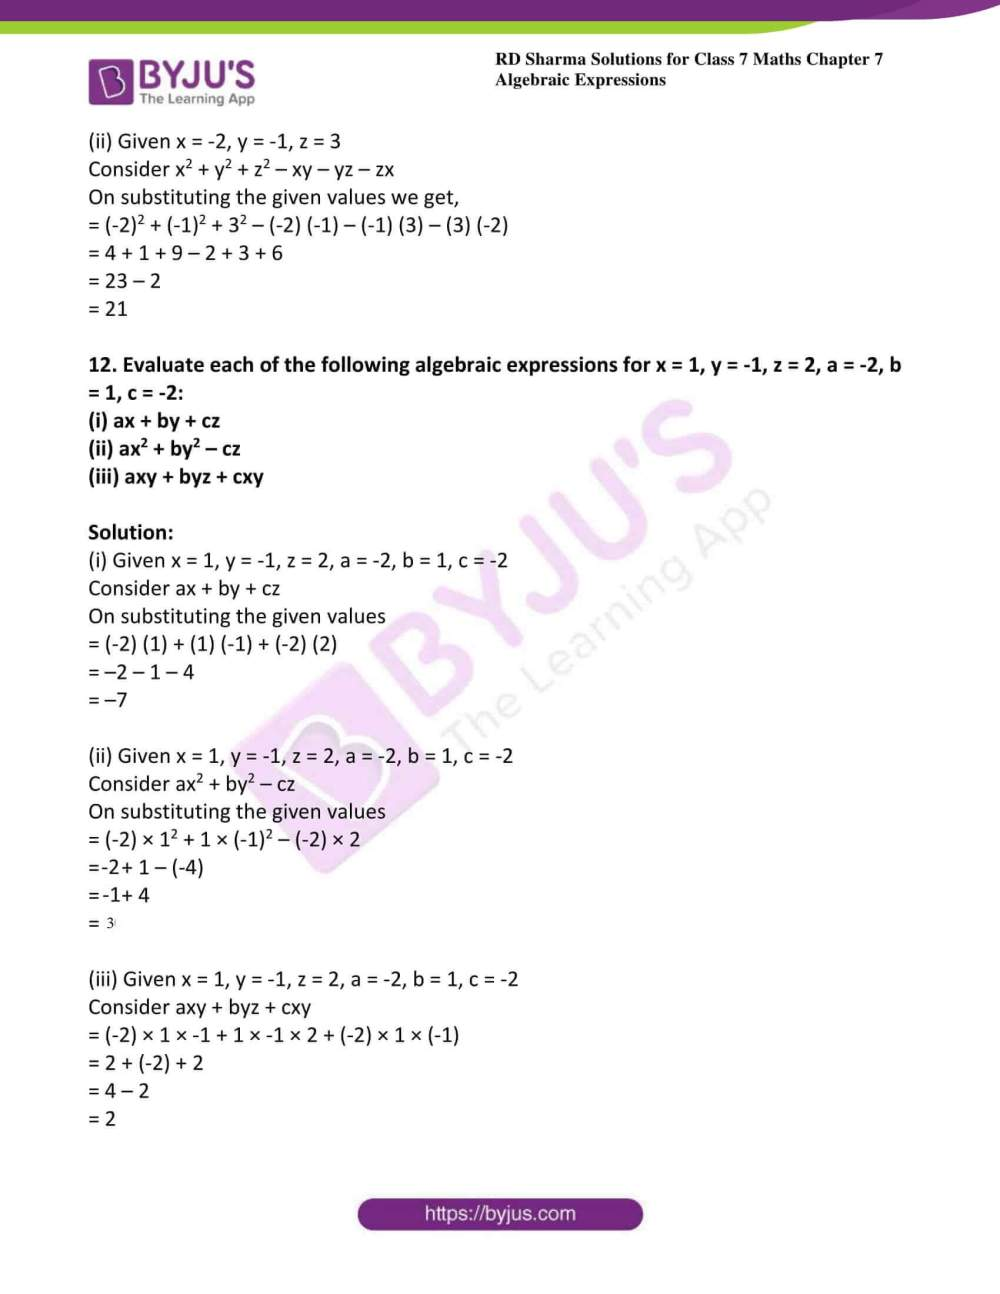 medium resolution of RD Sharma Solutions for Class 7 Maths Chapter 7 - Algebraic Expressions -  Download free PDF